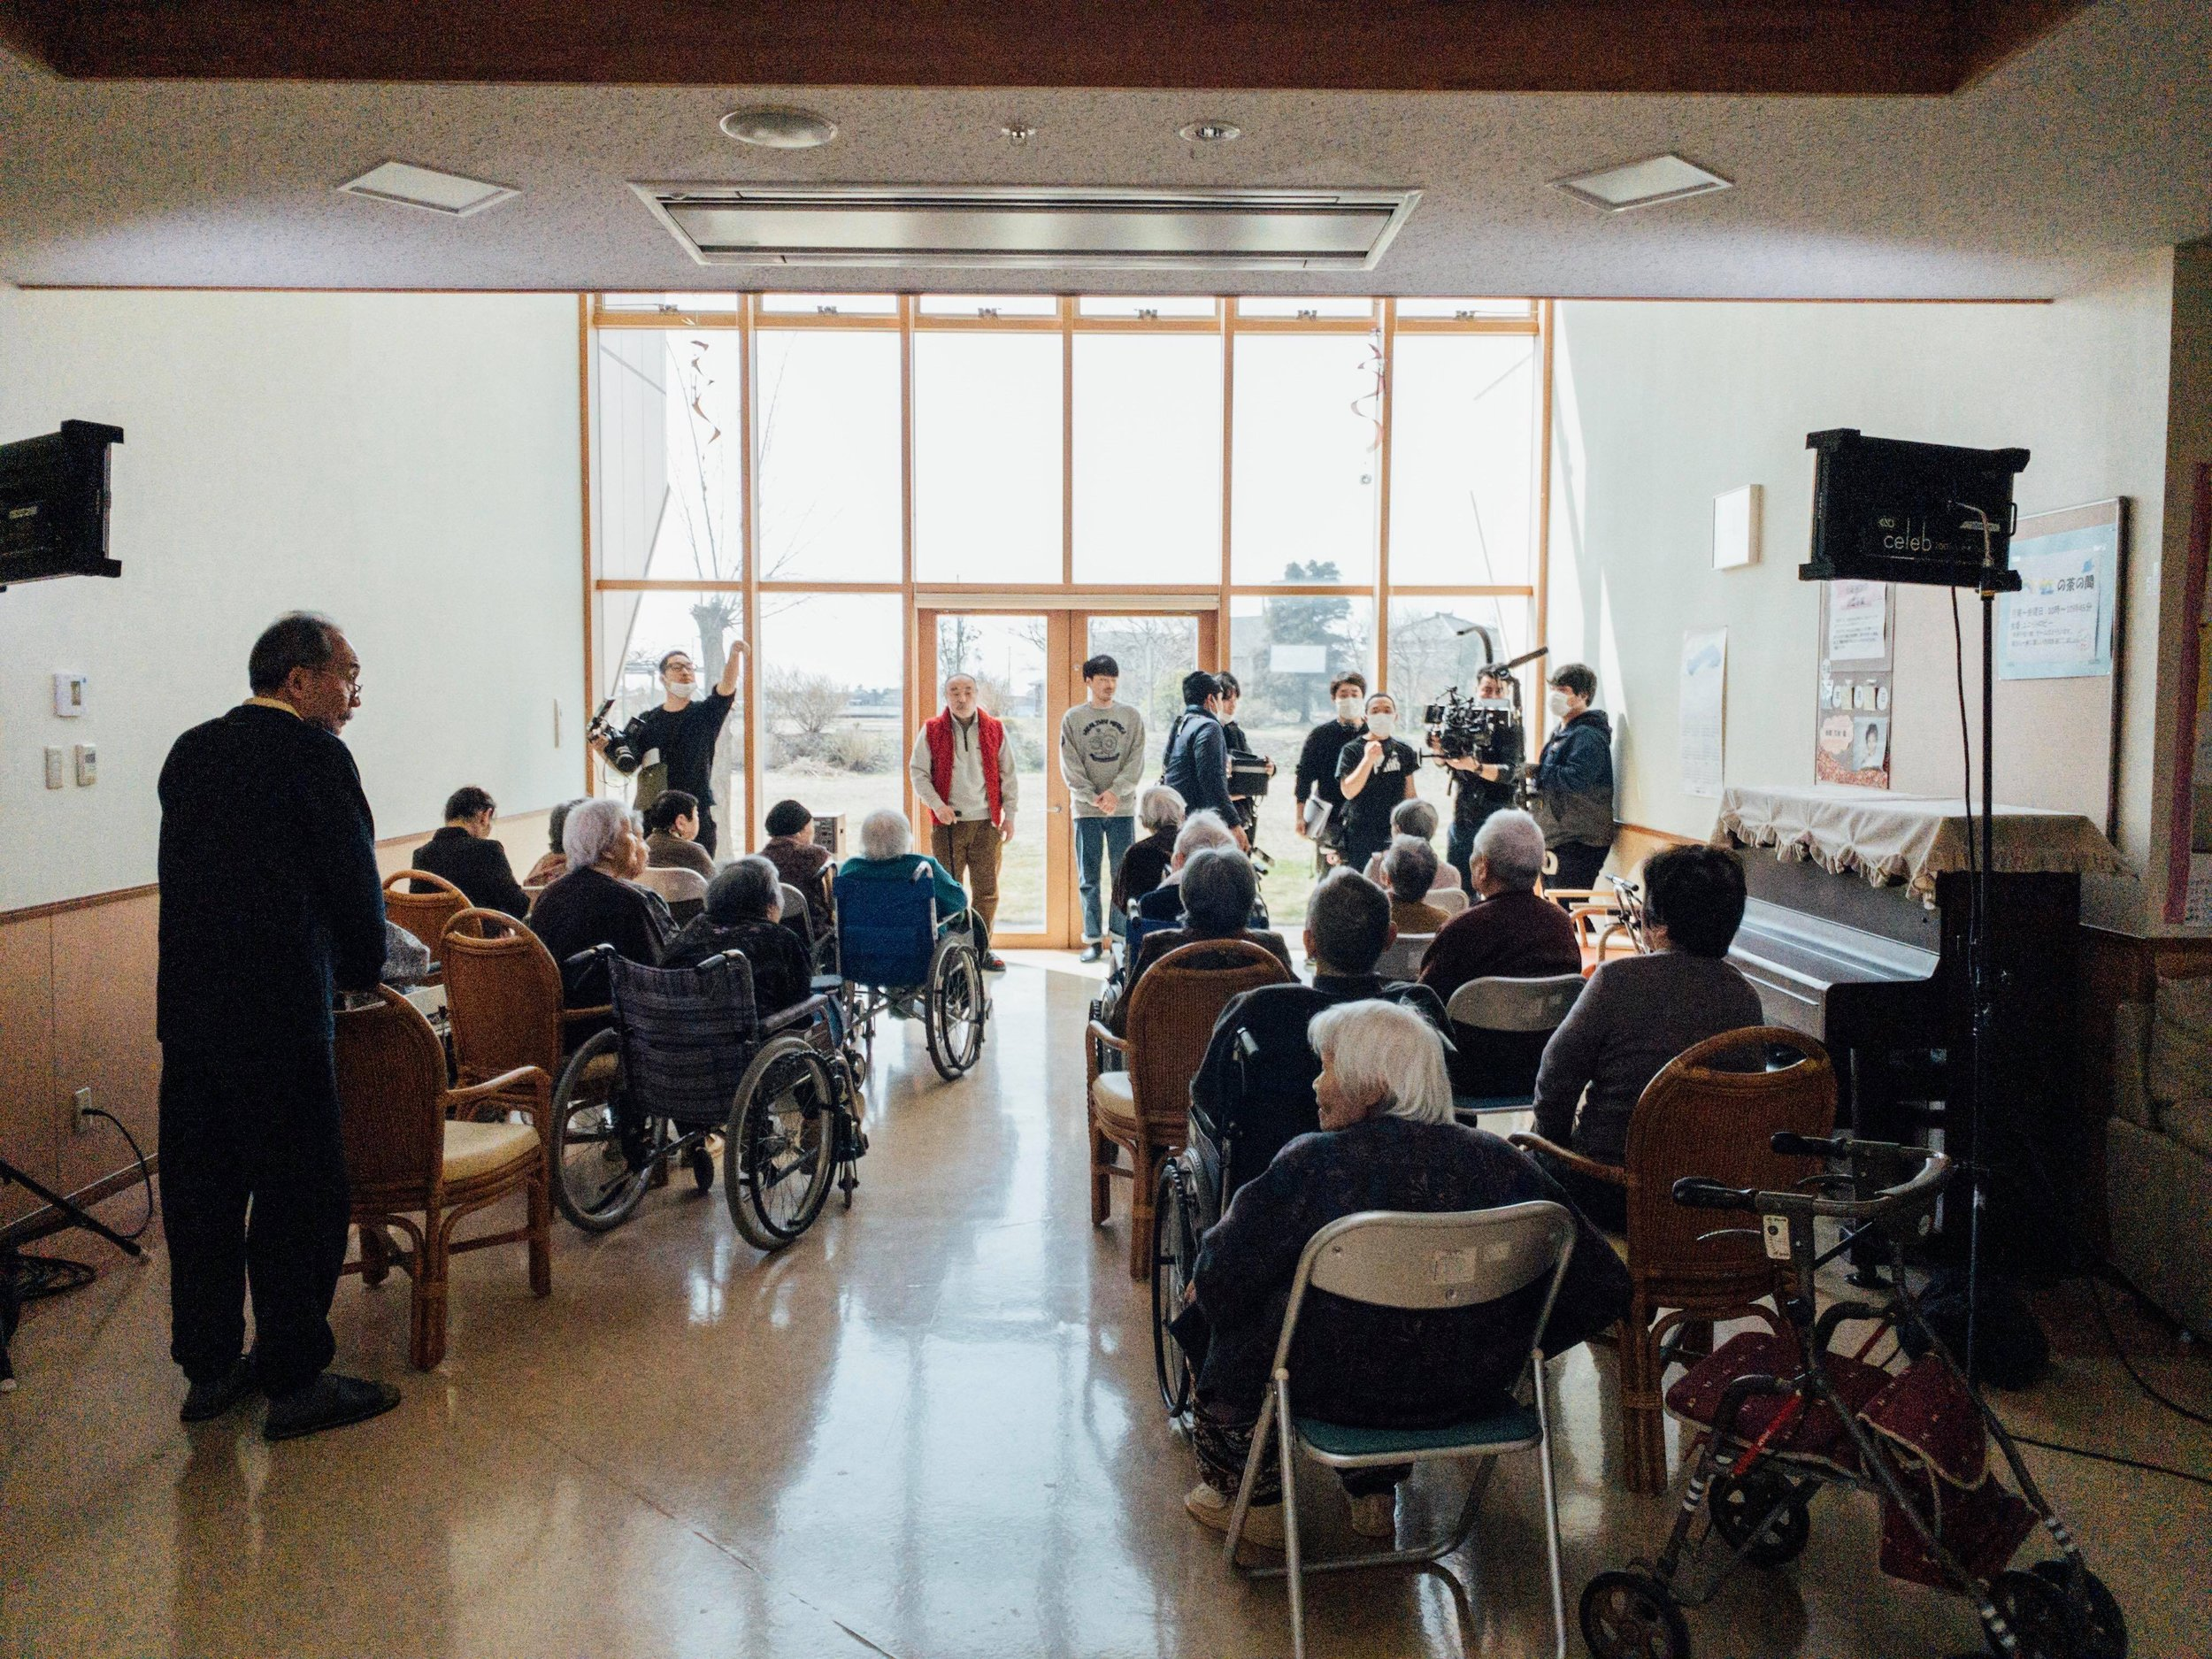 実際の新潟の介護施設が全面的に協力  Full support from the Niigata local nursing home facility